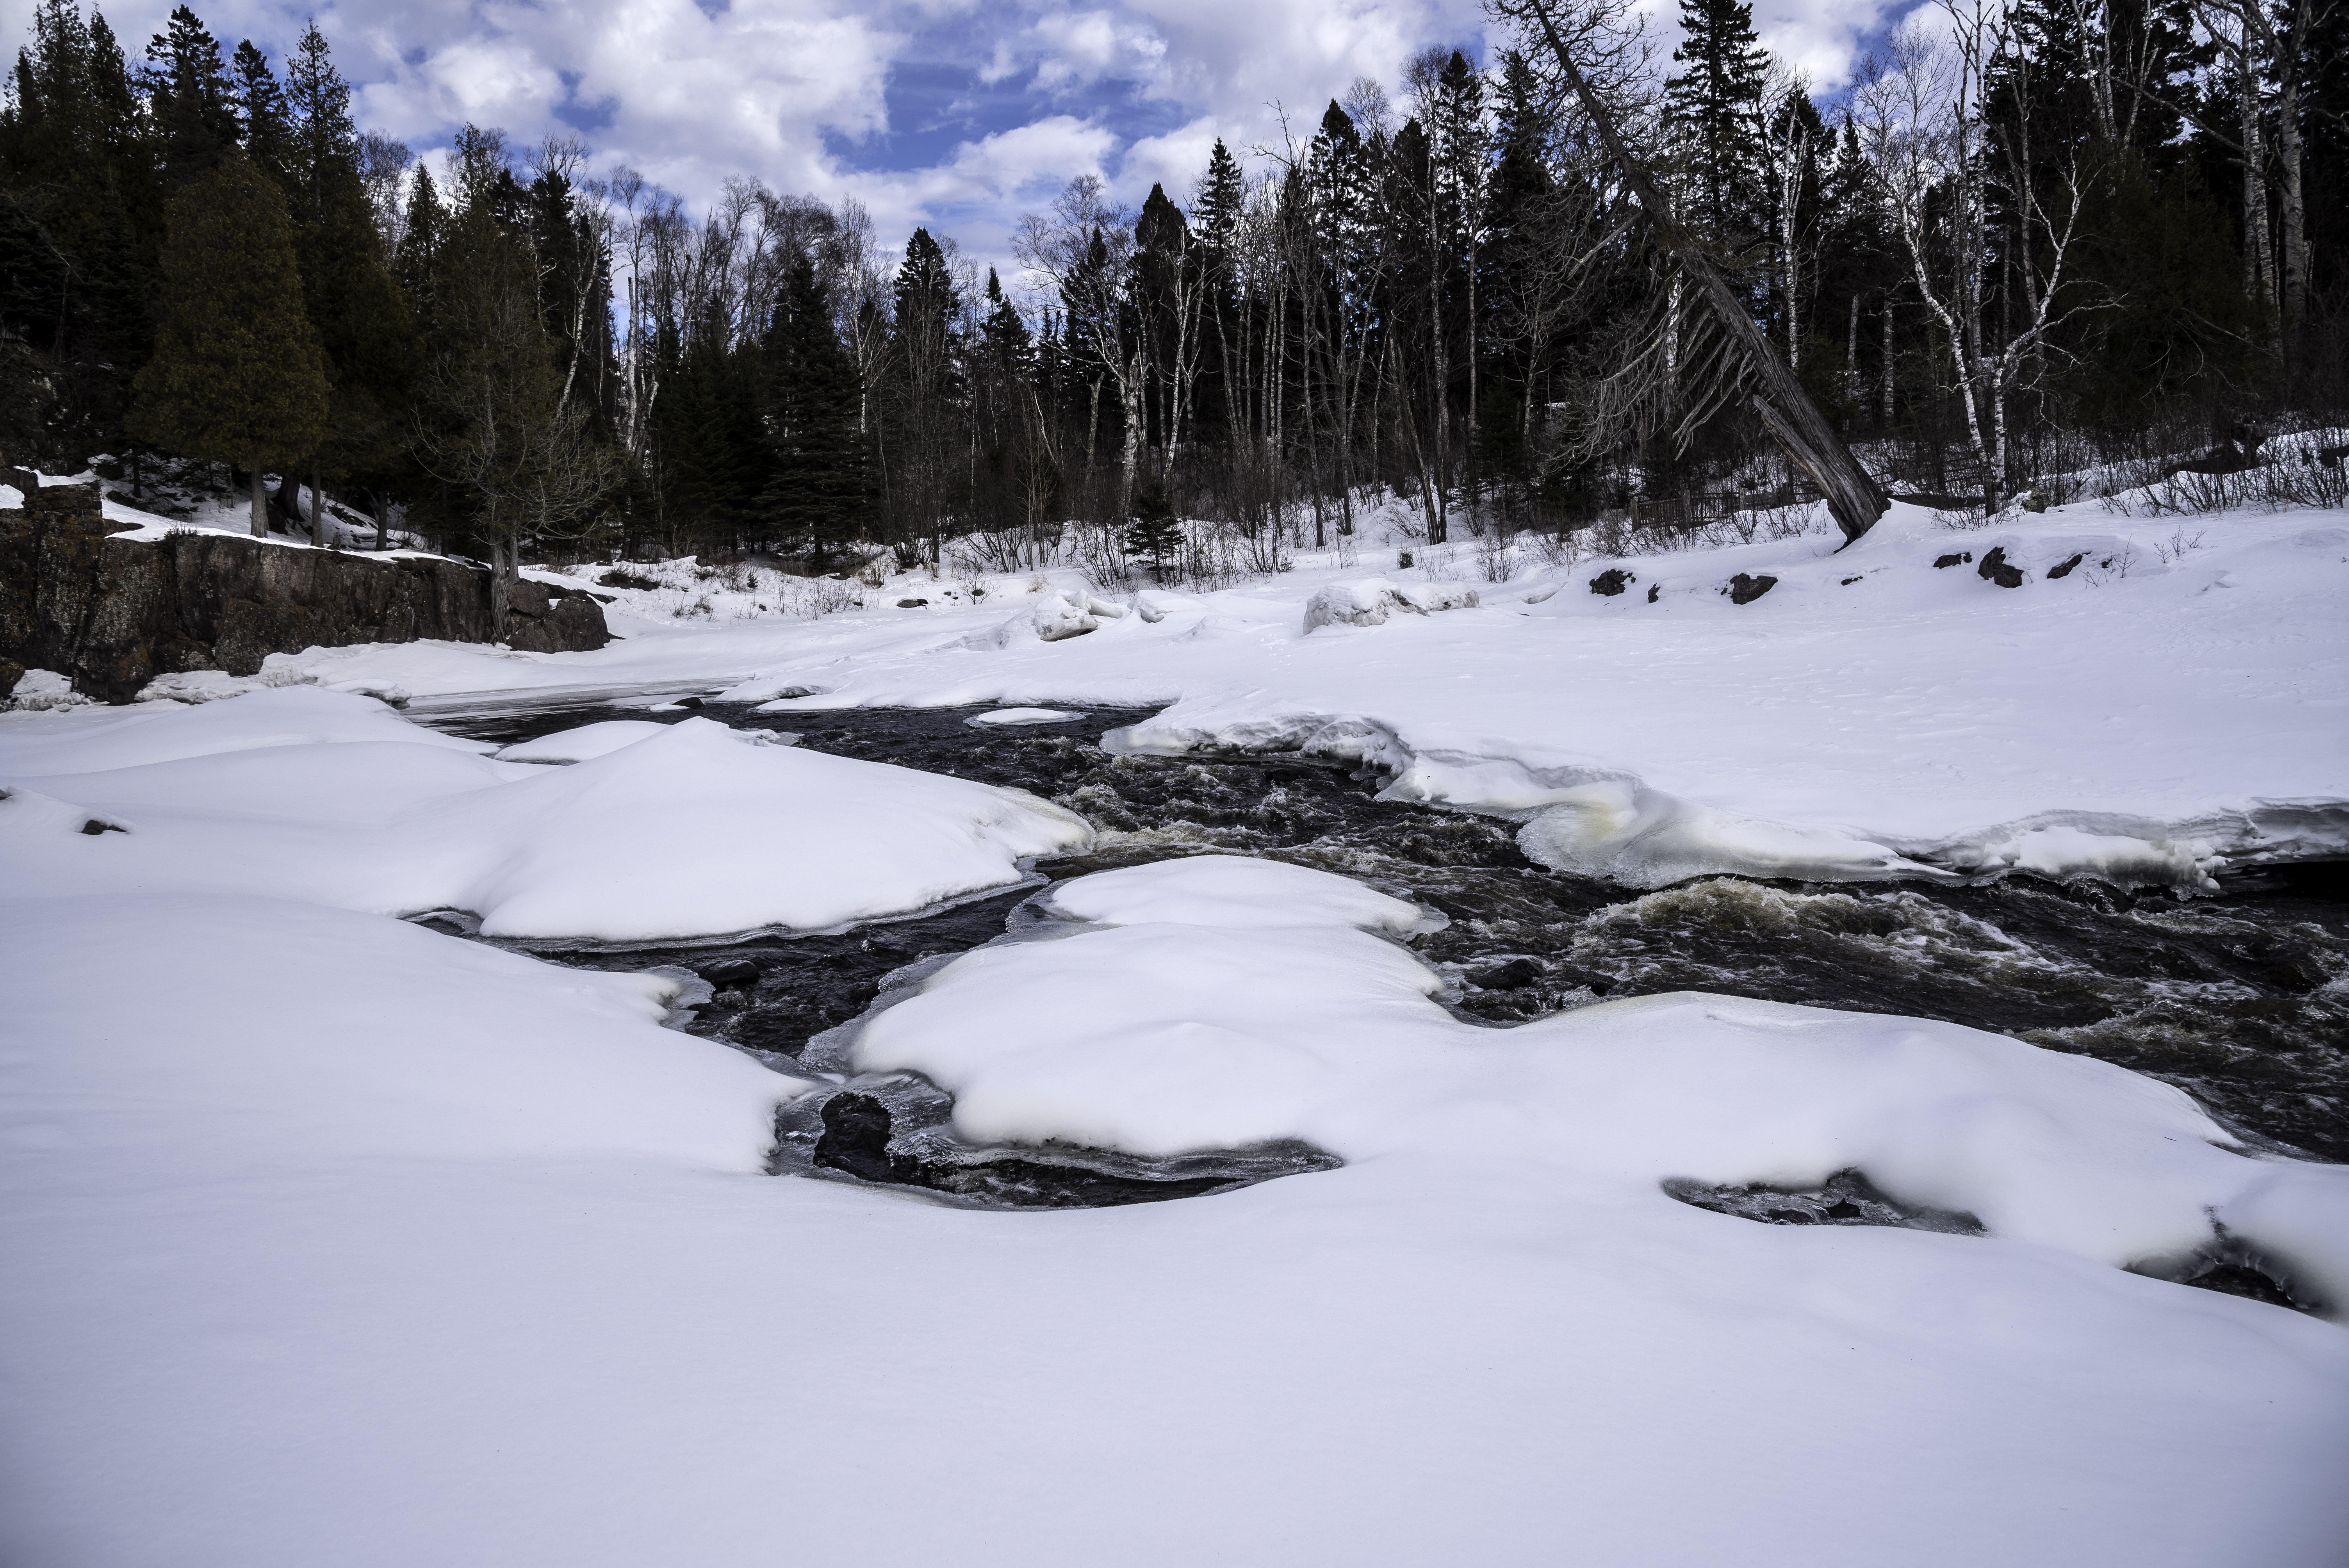 Rapids In The Snowy River In Temperance River State Park Minnesota Image Free Stock Photo